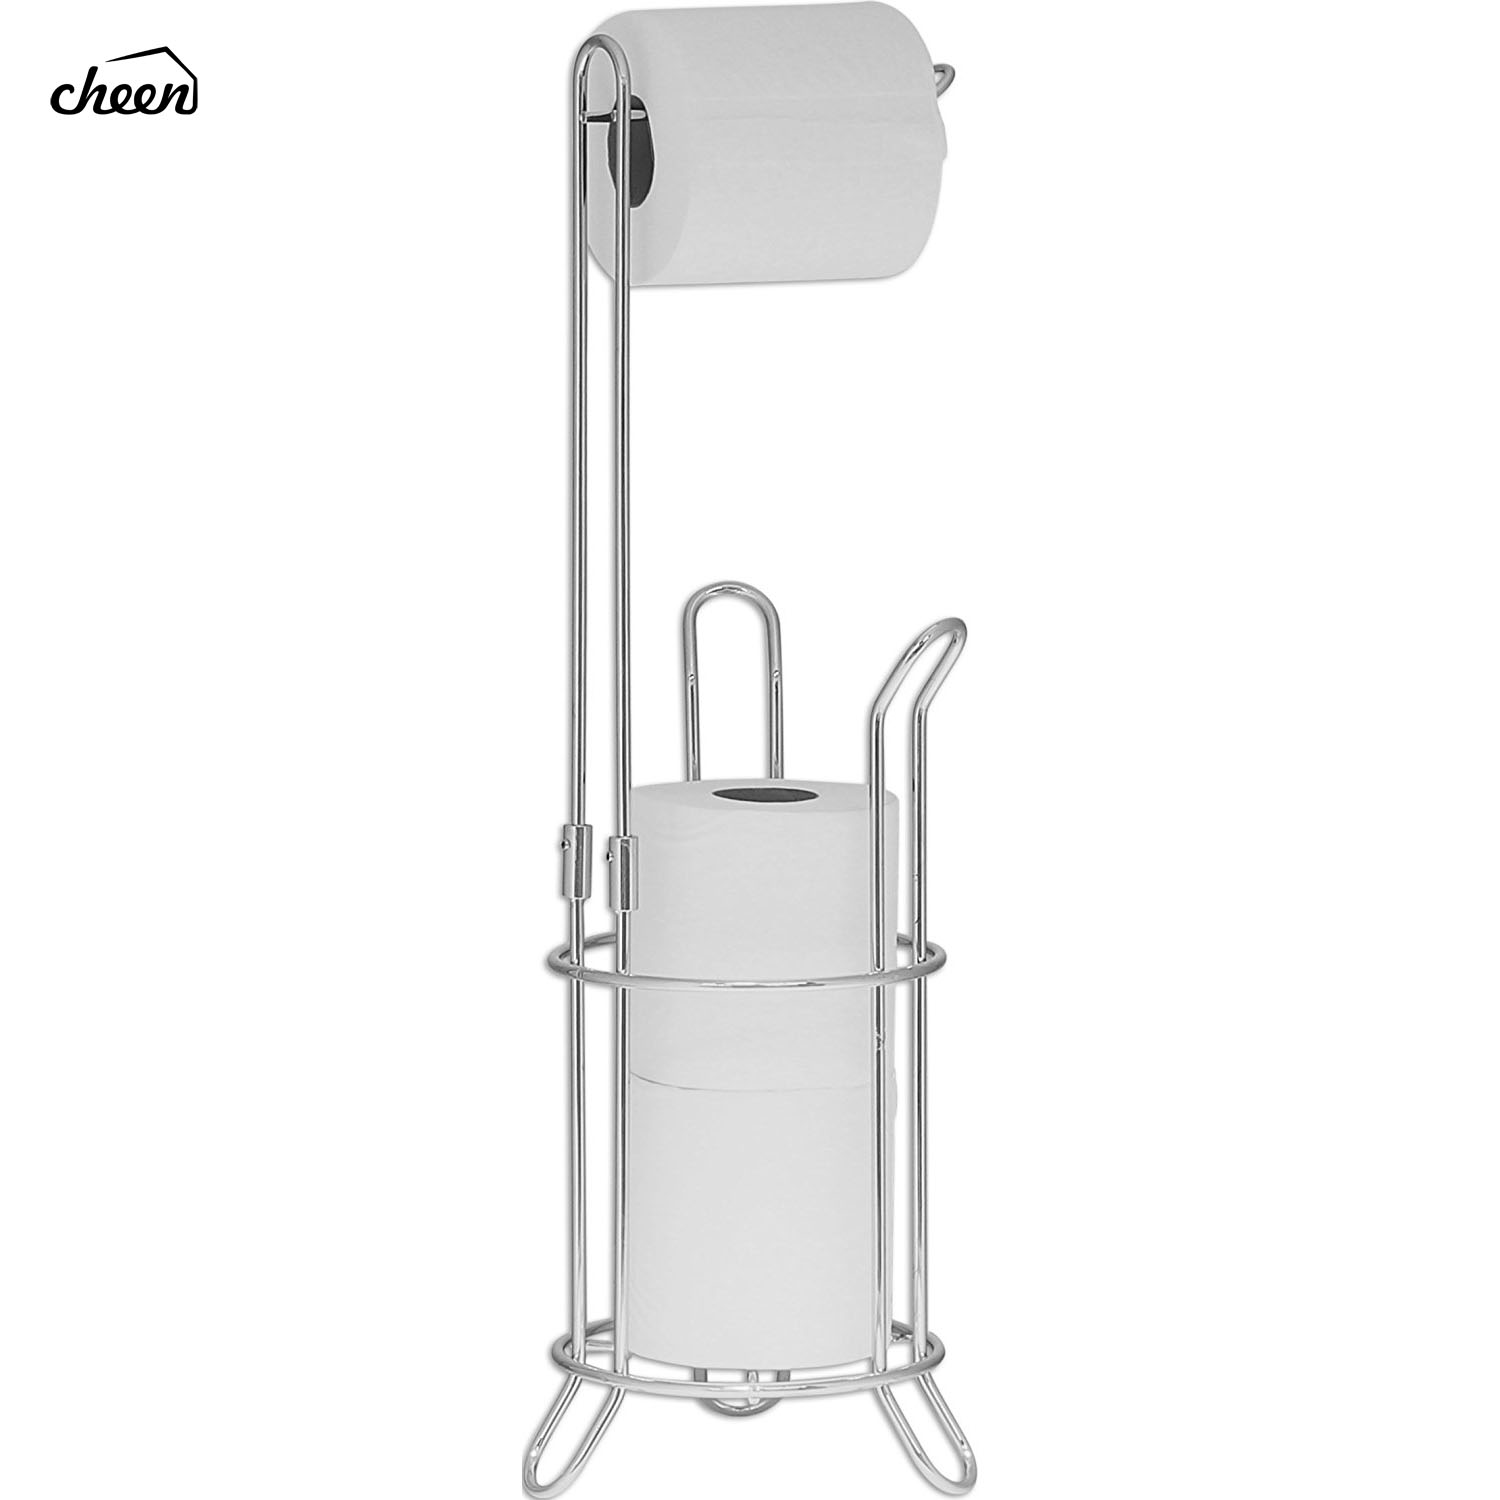 Freestanding Toilet Paper Roll Holder and Dispenser For Bathrooms Silver Toilet Stand with Extra Roll Storage For Up To 4 RollsFreestanding Toilet Paper Roll Holder and Dispenser For Bathrooms Silver Toilet Stand with Extra Roll Storage For Up To 4 Rolls